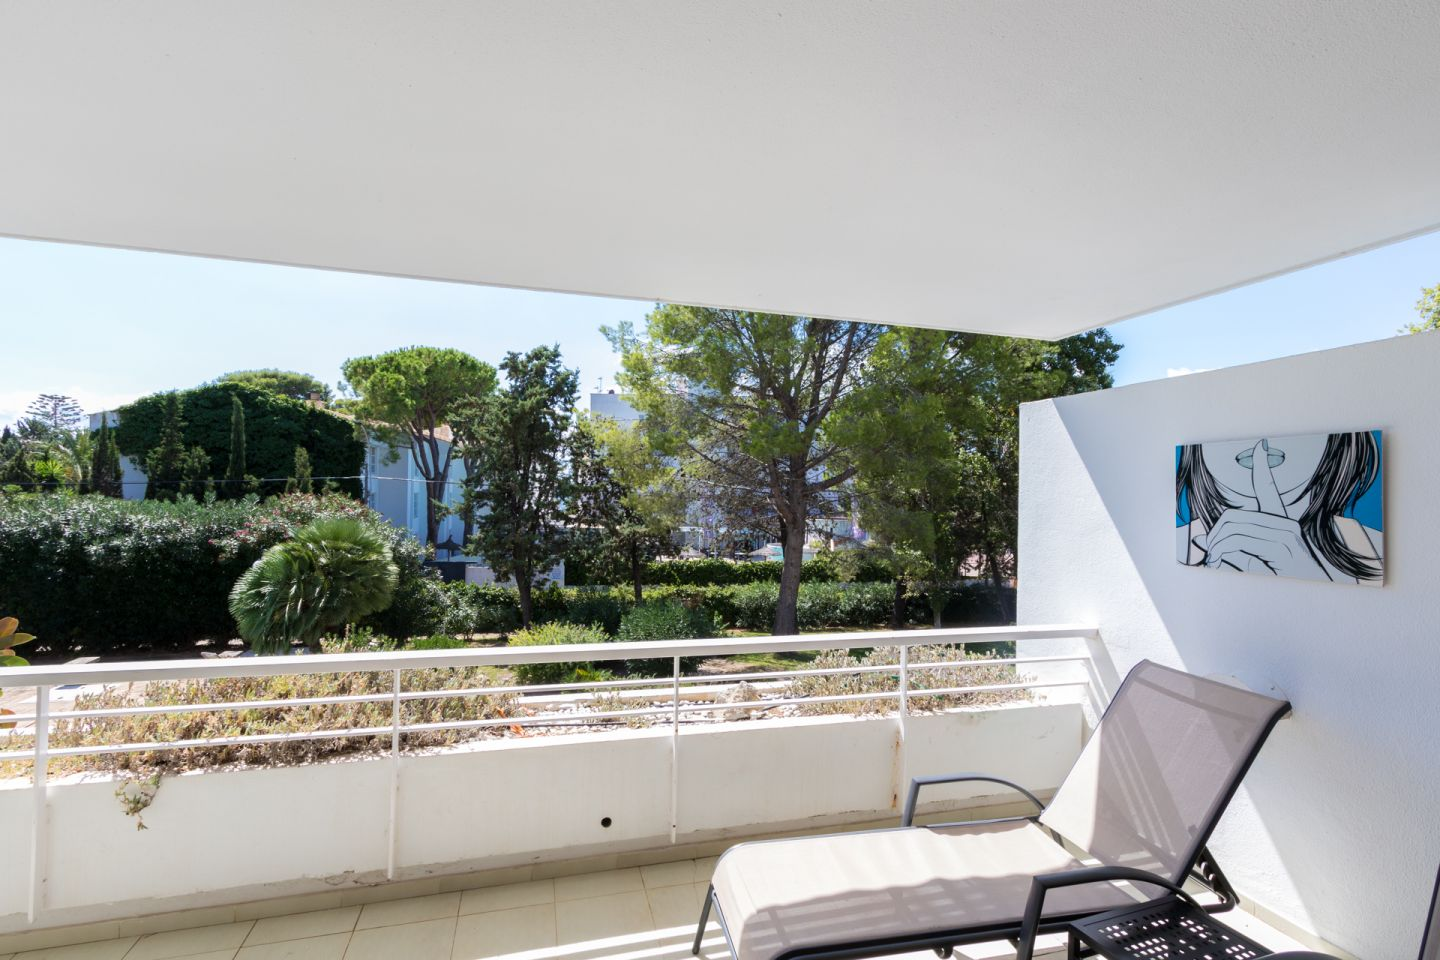 3 Bed Apartment for sale in PUERTO POLLENSA 14